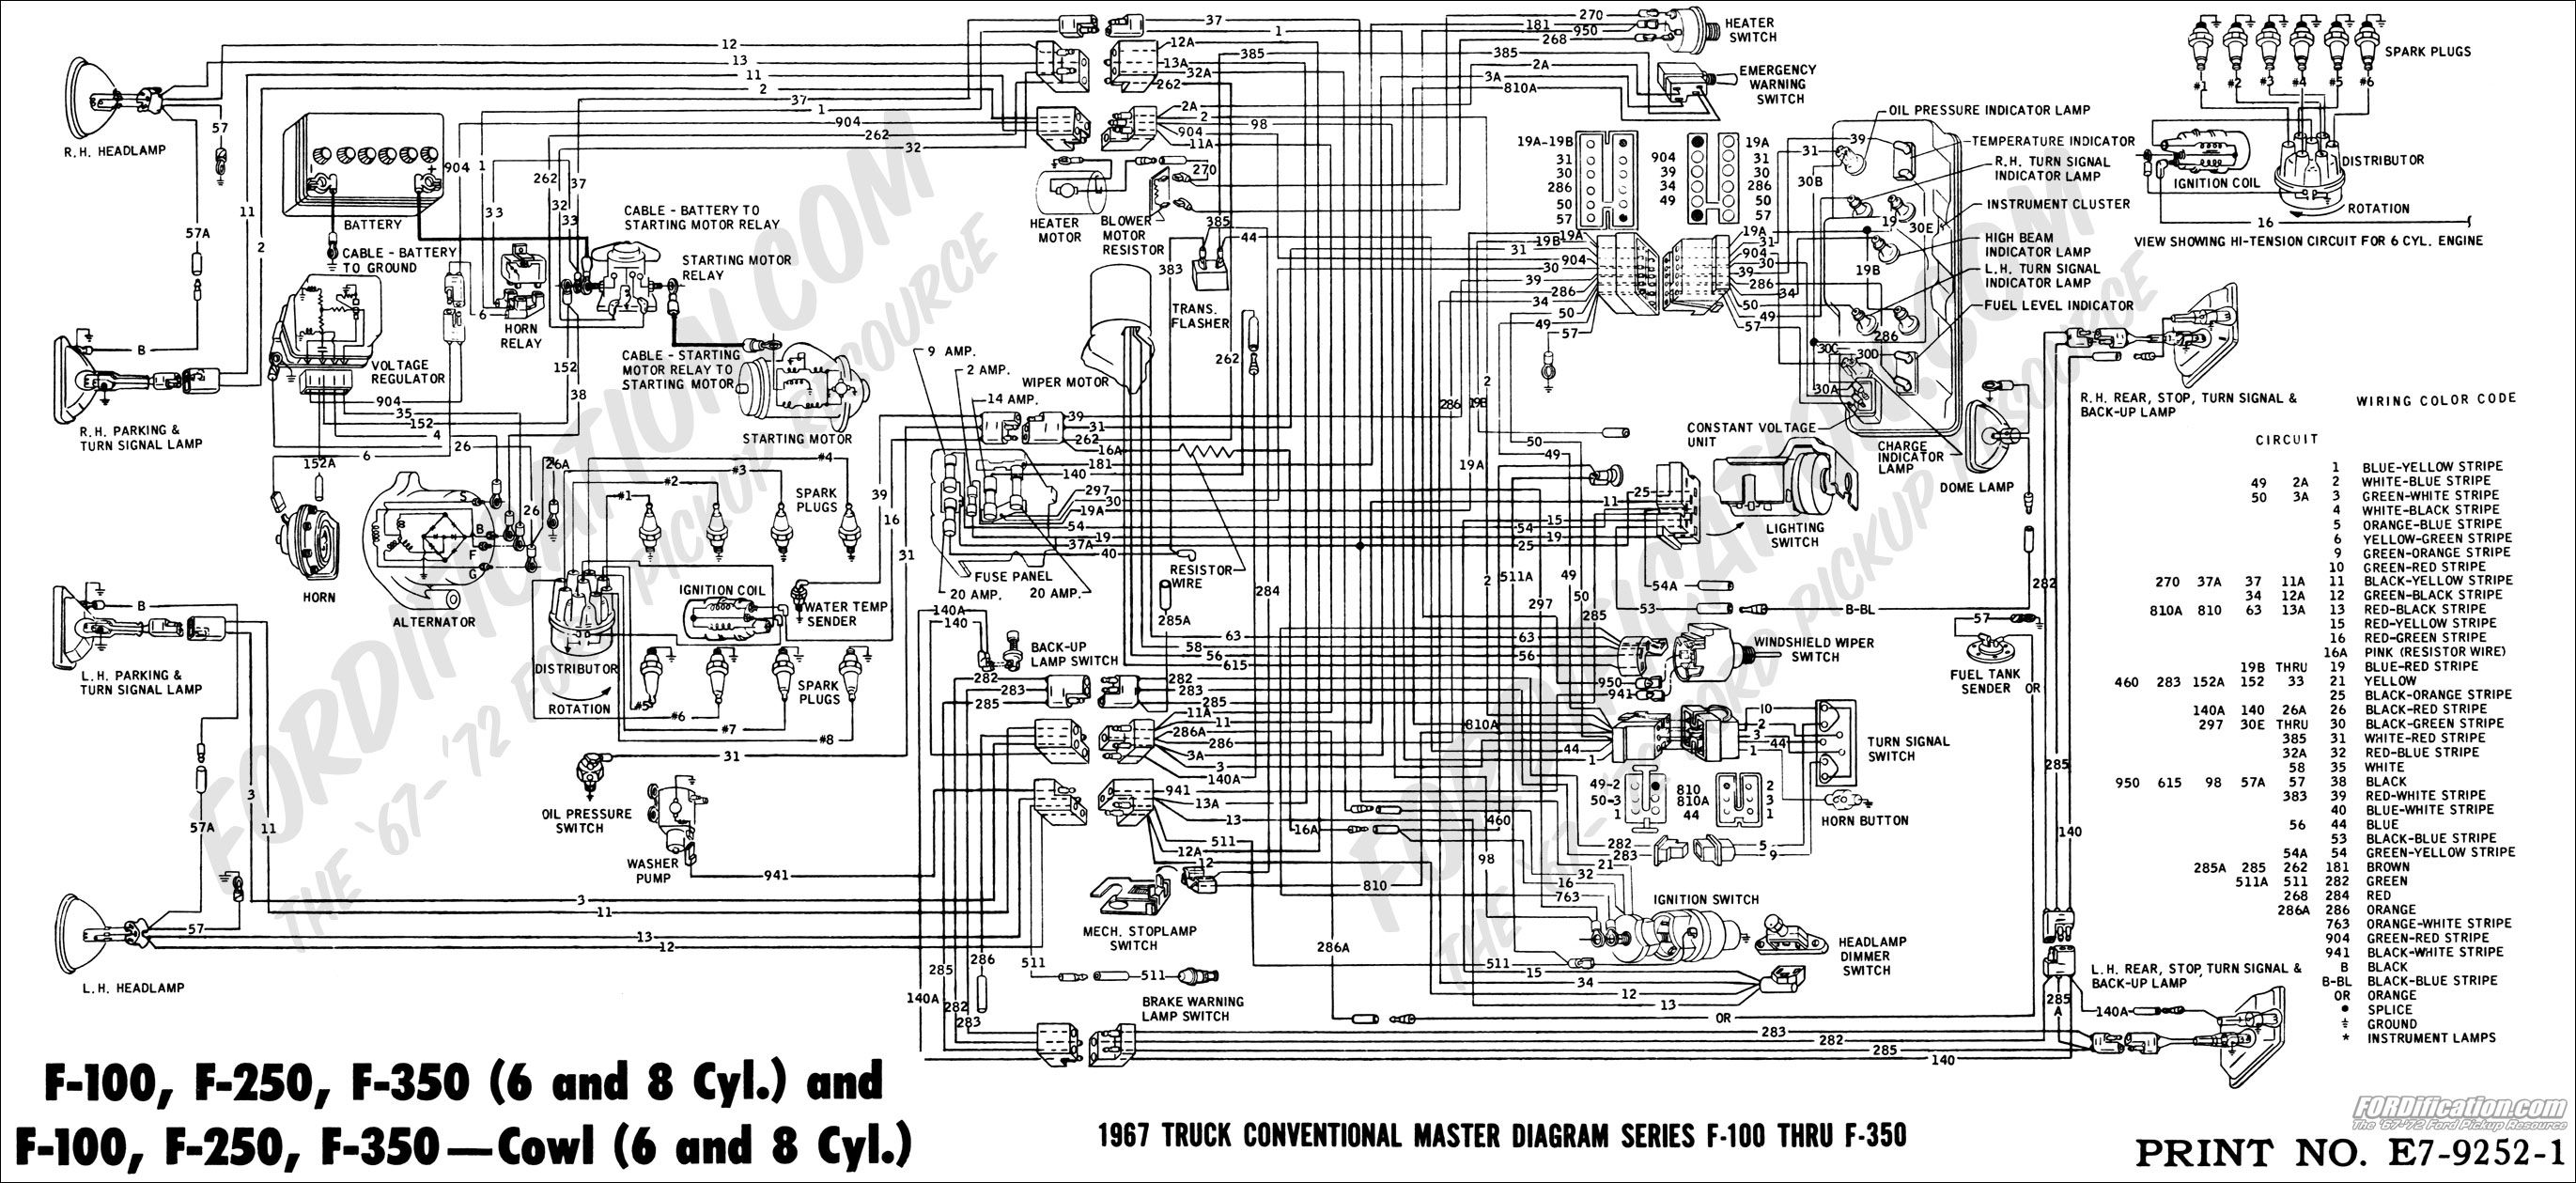 8e608320d8e6c71ff5bbdb2efdd7ada1 ford truck technical drawings and schematics section h wiring Ford Wiring Harness Diagrams at reclaimingppi.co